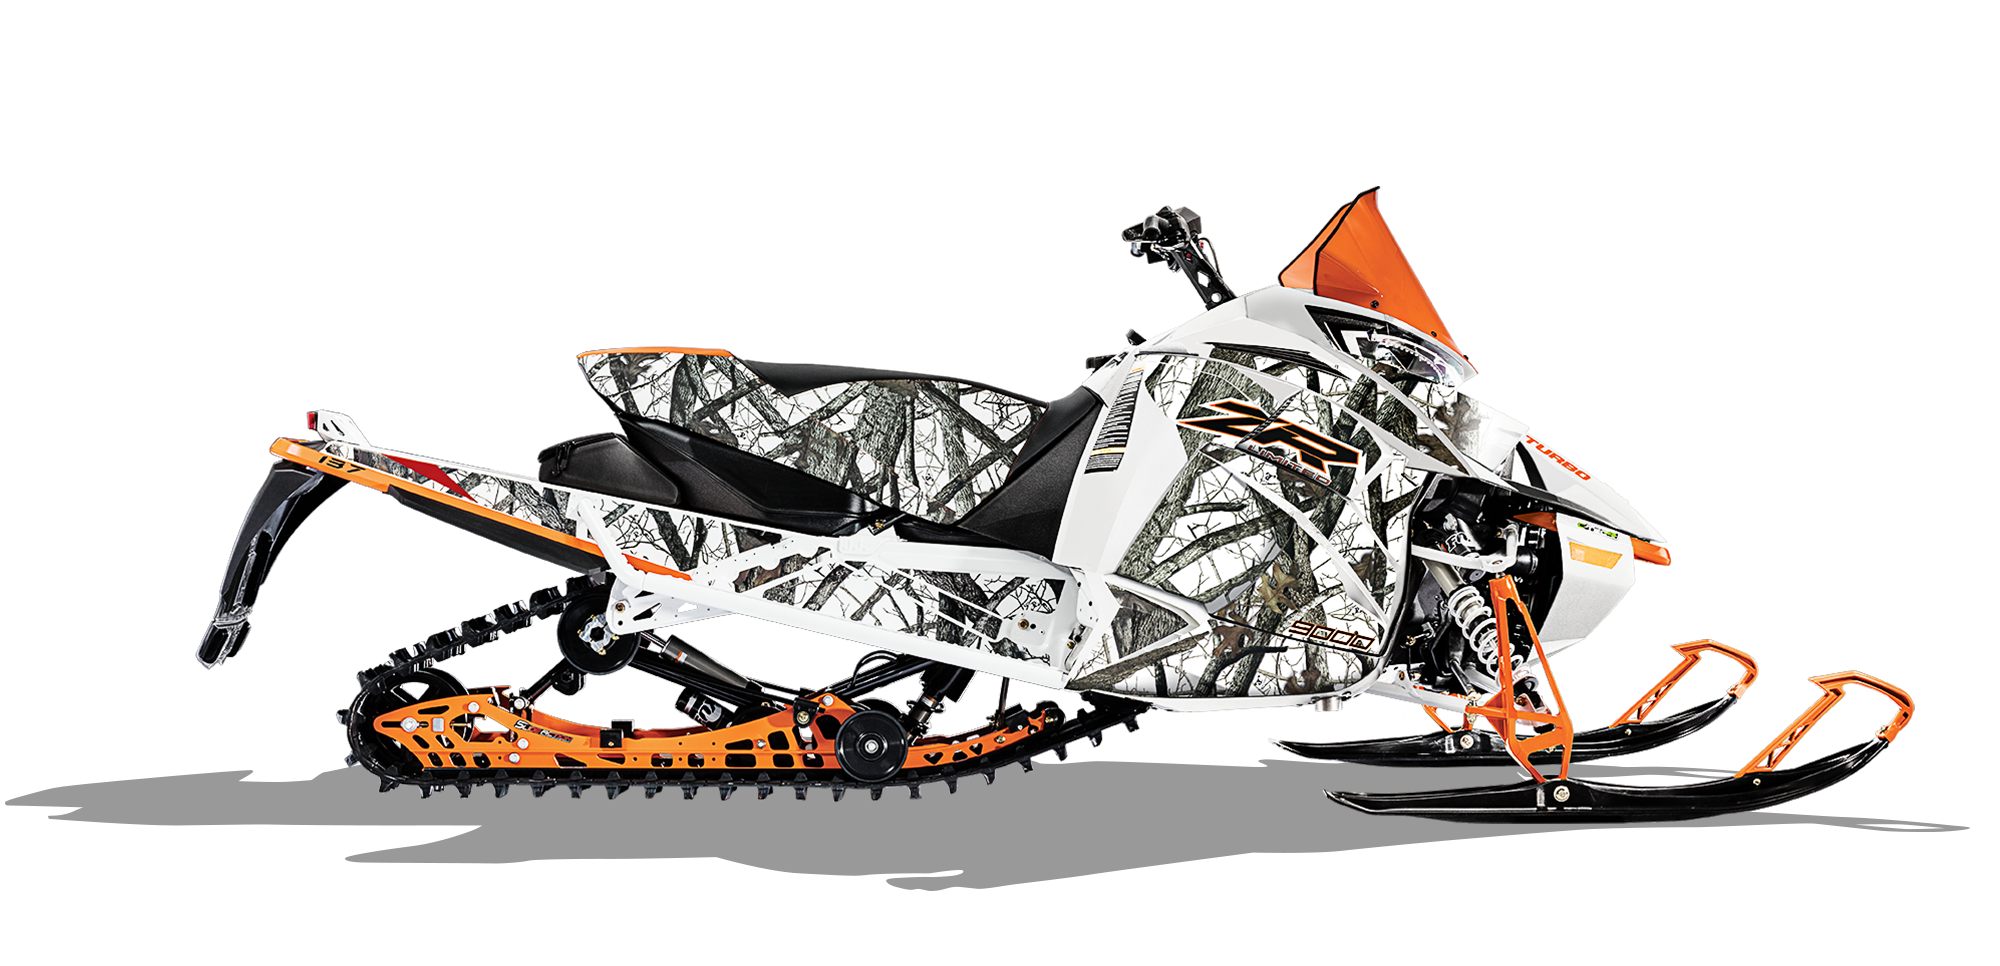 view this sled